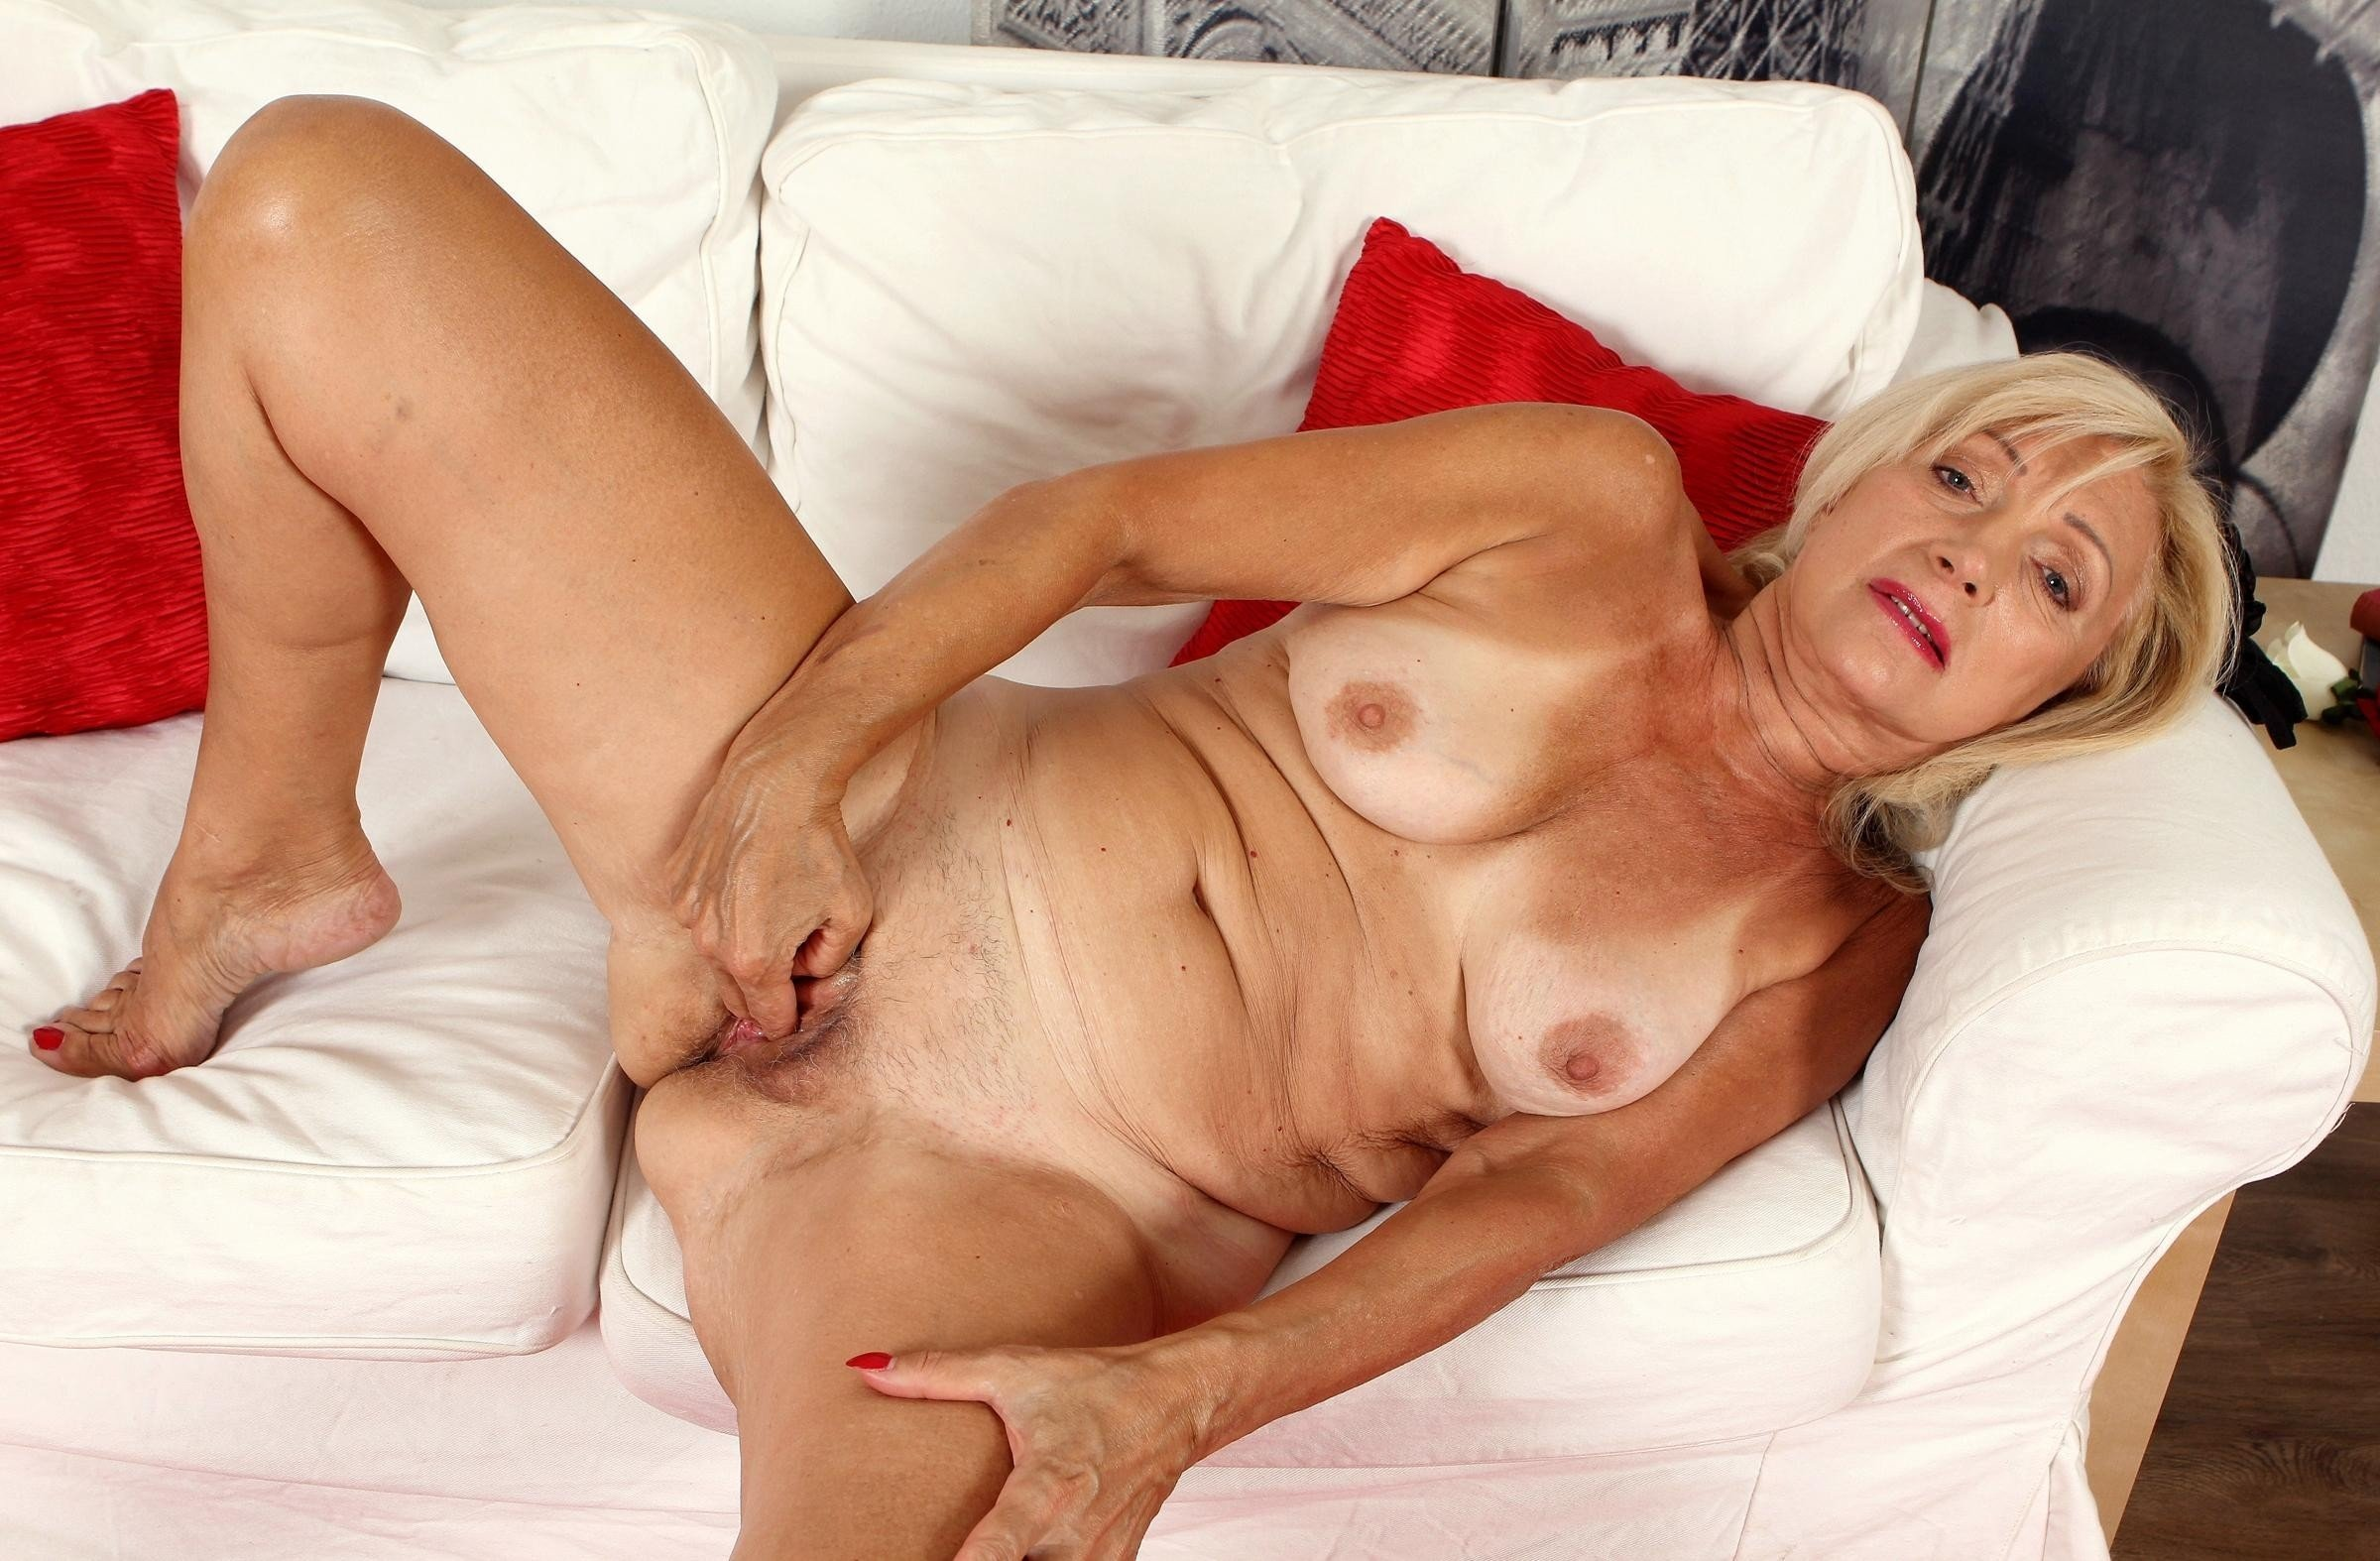 Mature Women And Girlfriends In Porn Pics